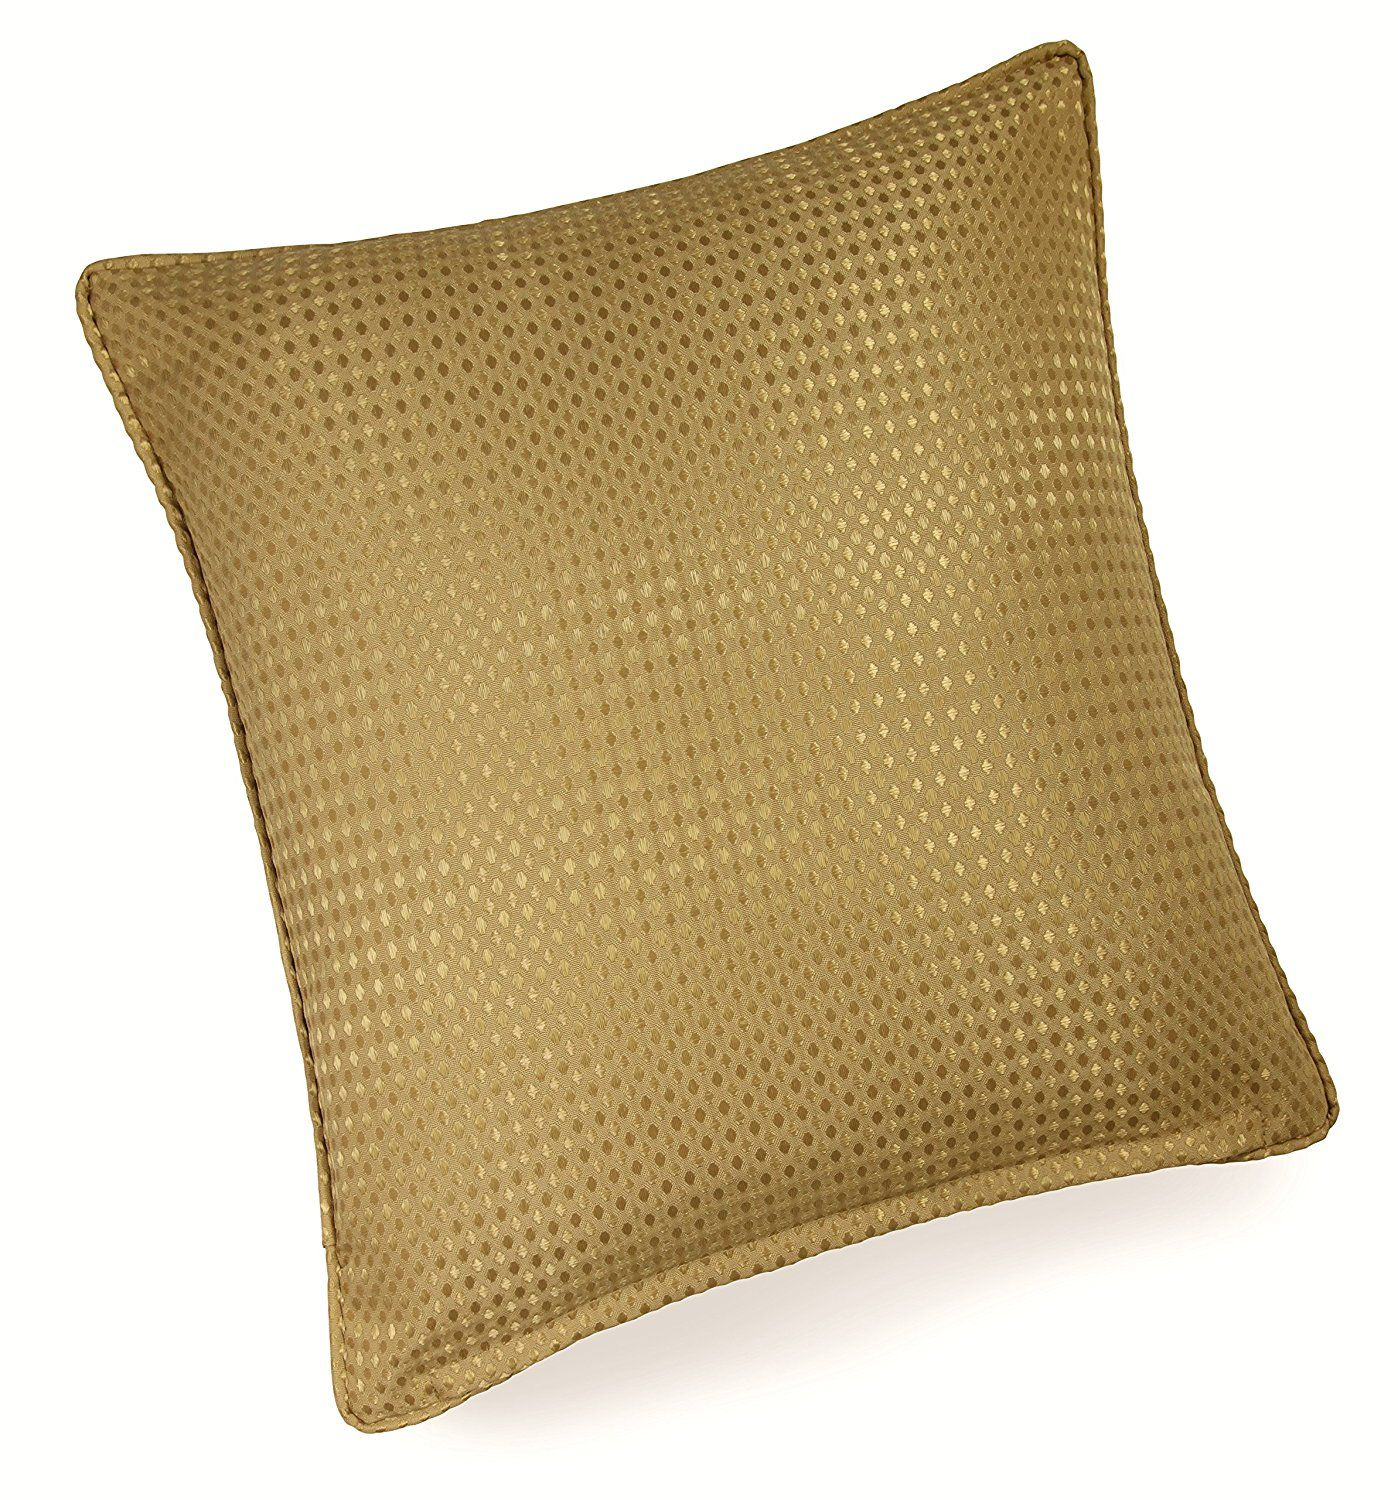 Impressions waffle gold piped in xcm cushion cover cushion